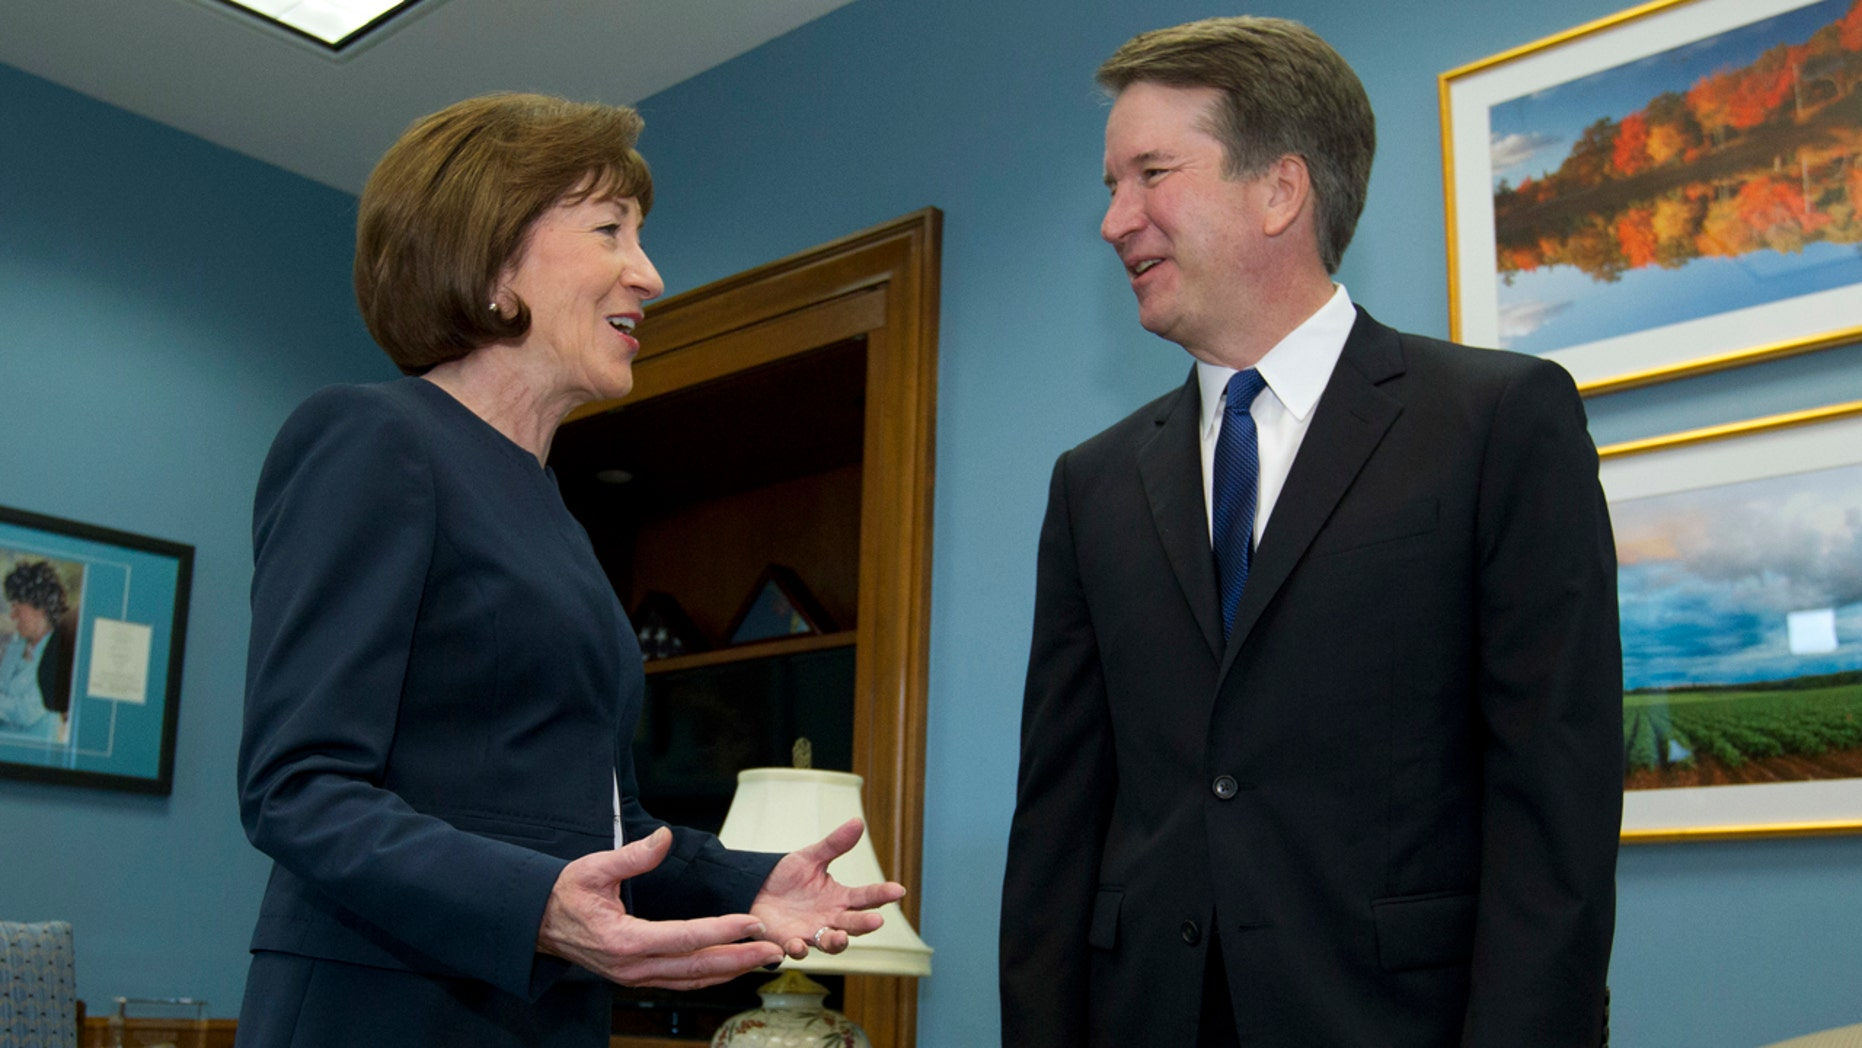 Sen. Susan Collins, R-Maine, speaks with Supreme Court nominee Judge Brett Kavanaugh at her office, before a private meeting on Capitol Hill in Washington on Tuesday, Aug. 21, 2018.